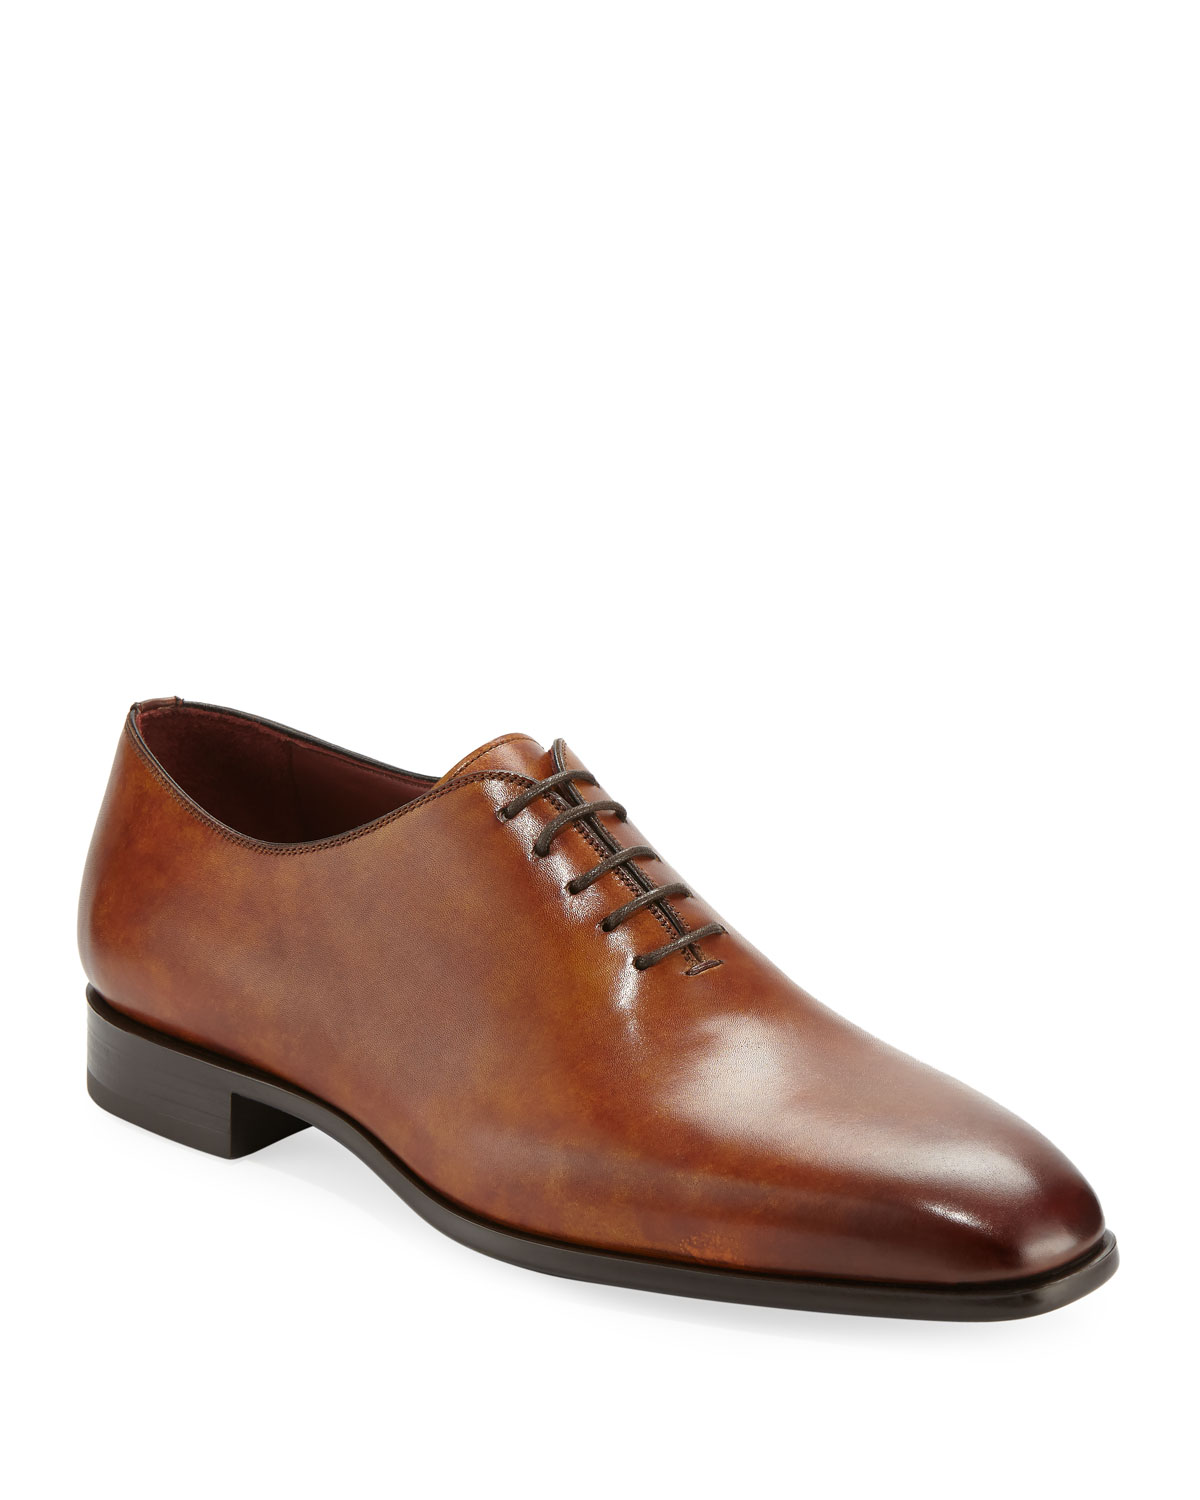 Magnanni For Neiman Marcus Mens One Piece Leather Lace Up Dress